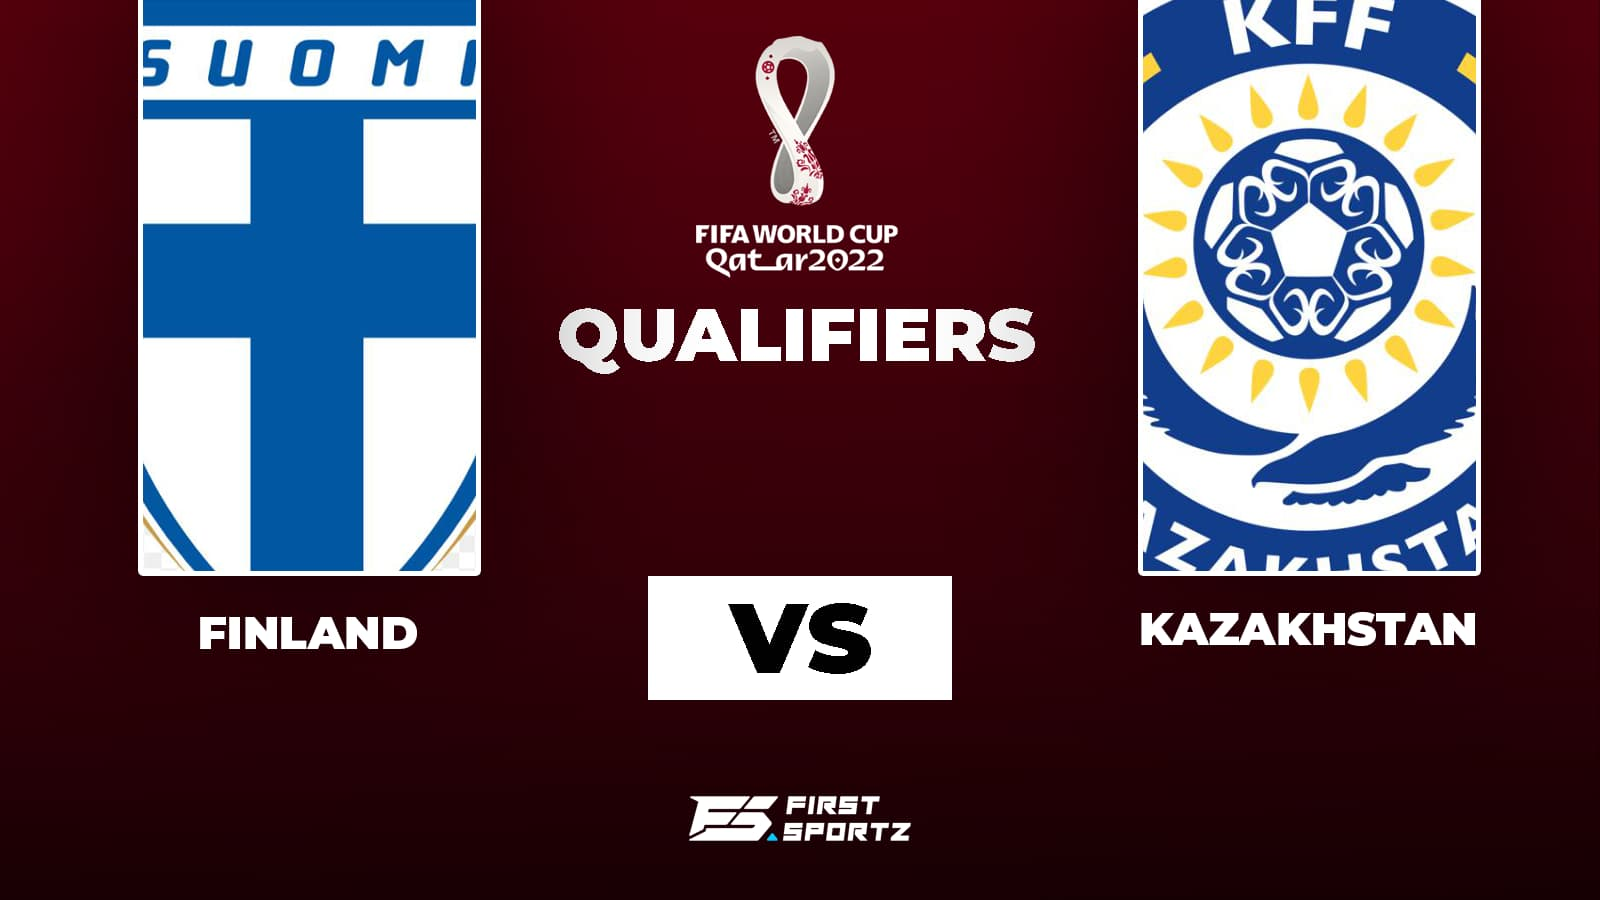 2022 World Cup Qualifiers: Finland vs Kazakhstan Live Stream, Preview and Prediction » FirstSportz